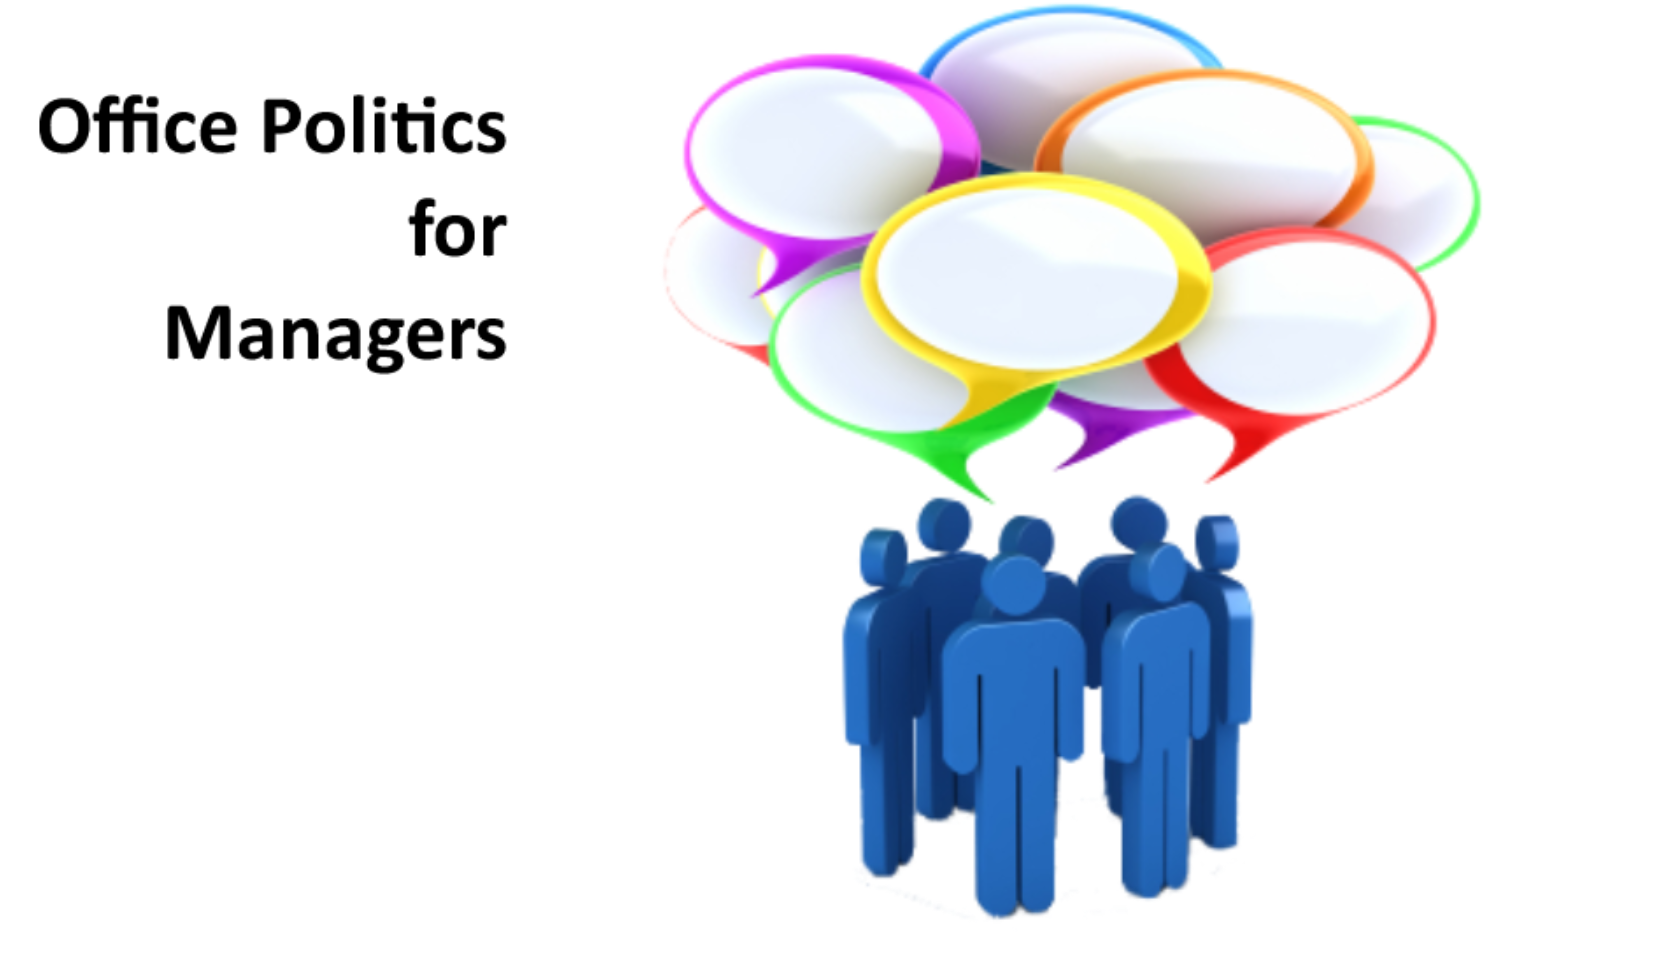 Office Politics for Managers